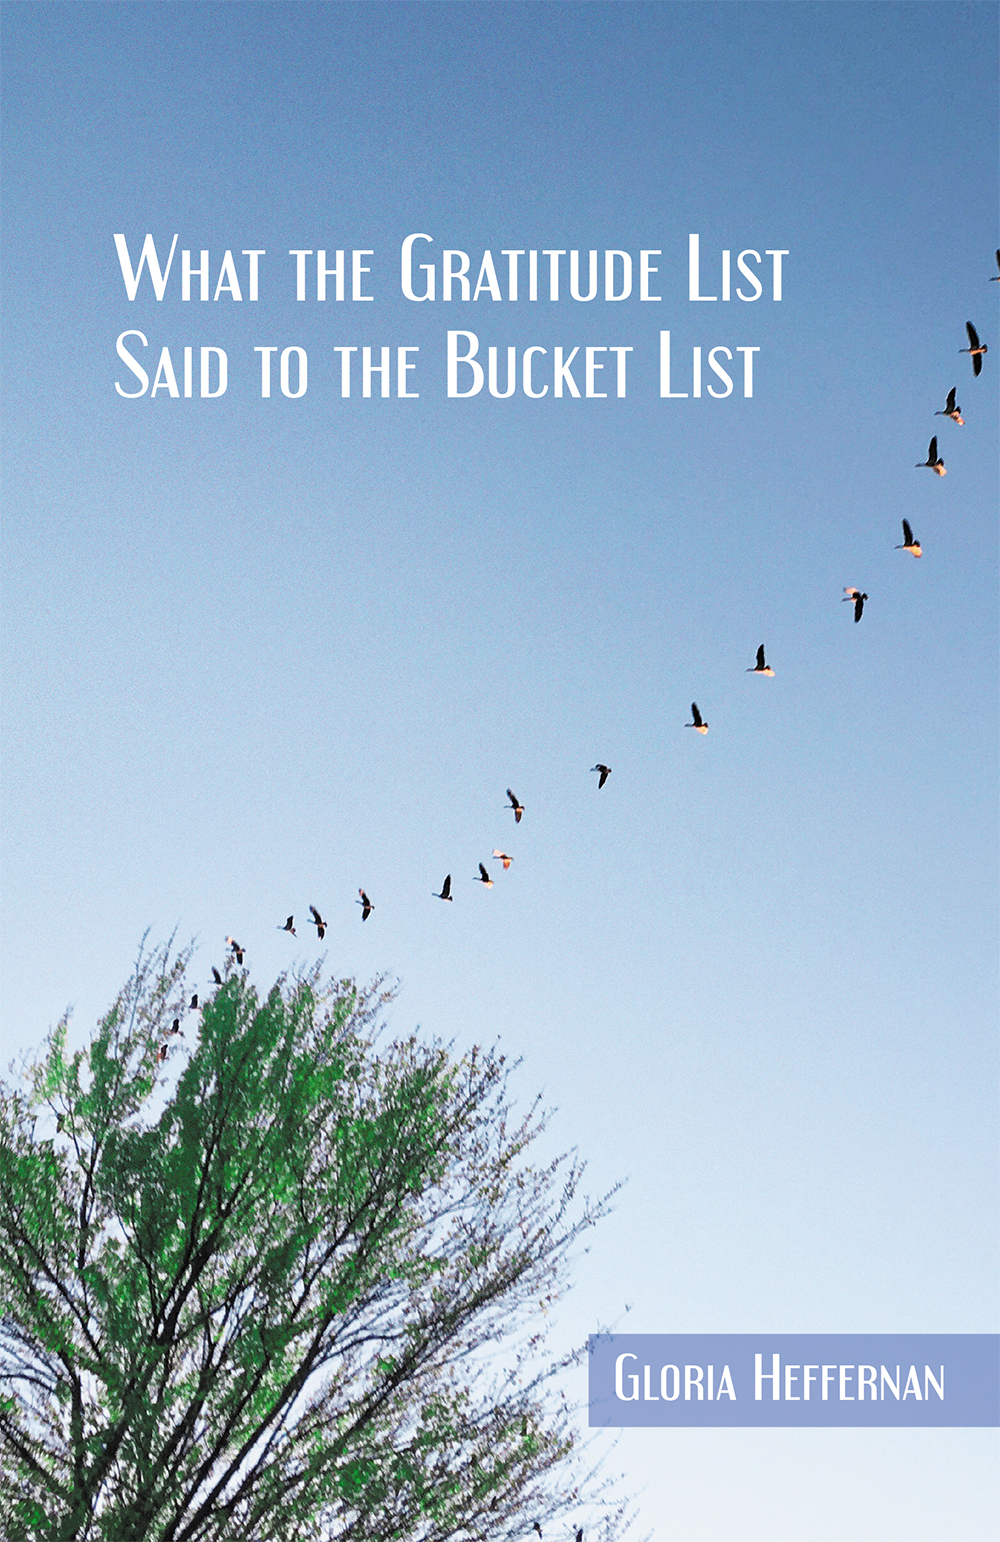 What the Gratitude List Said to the Bucket List